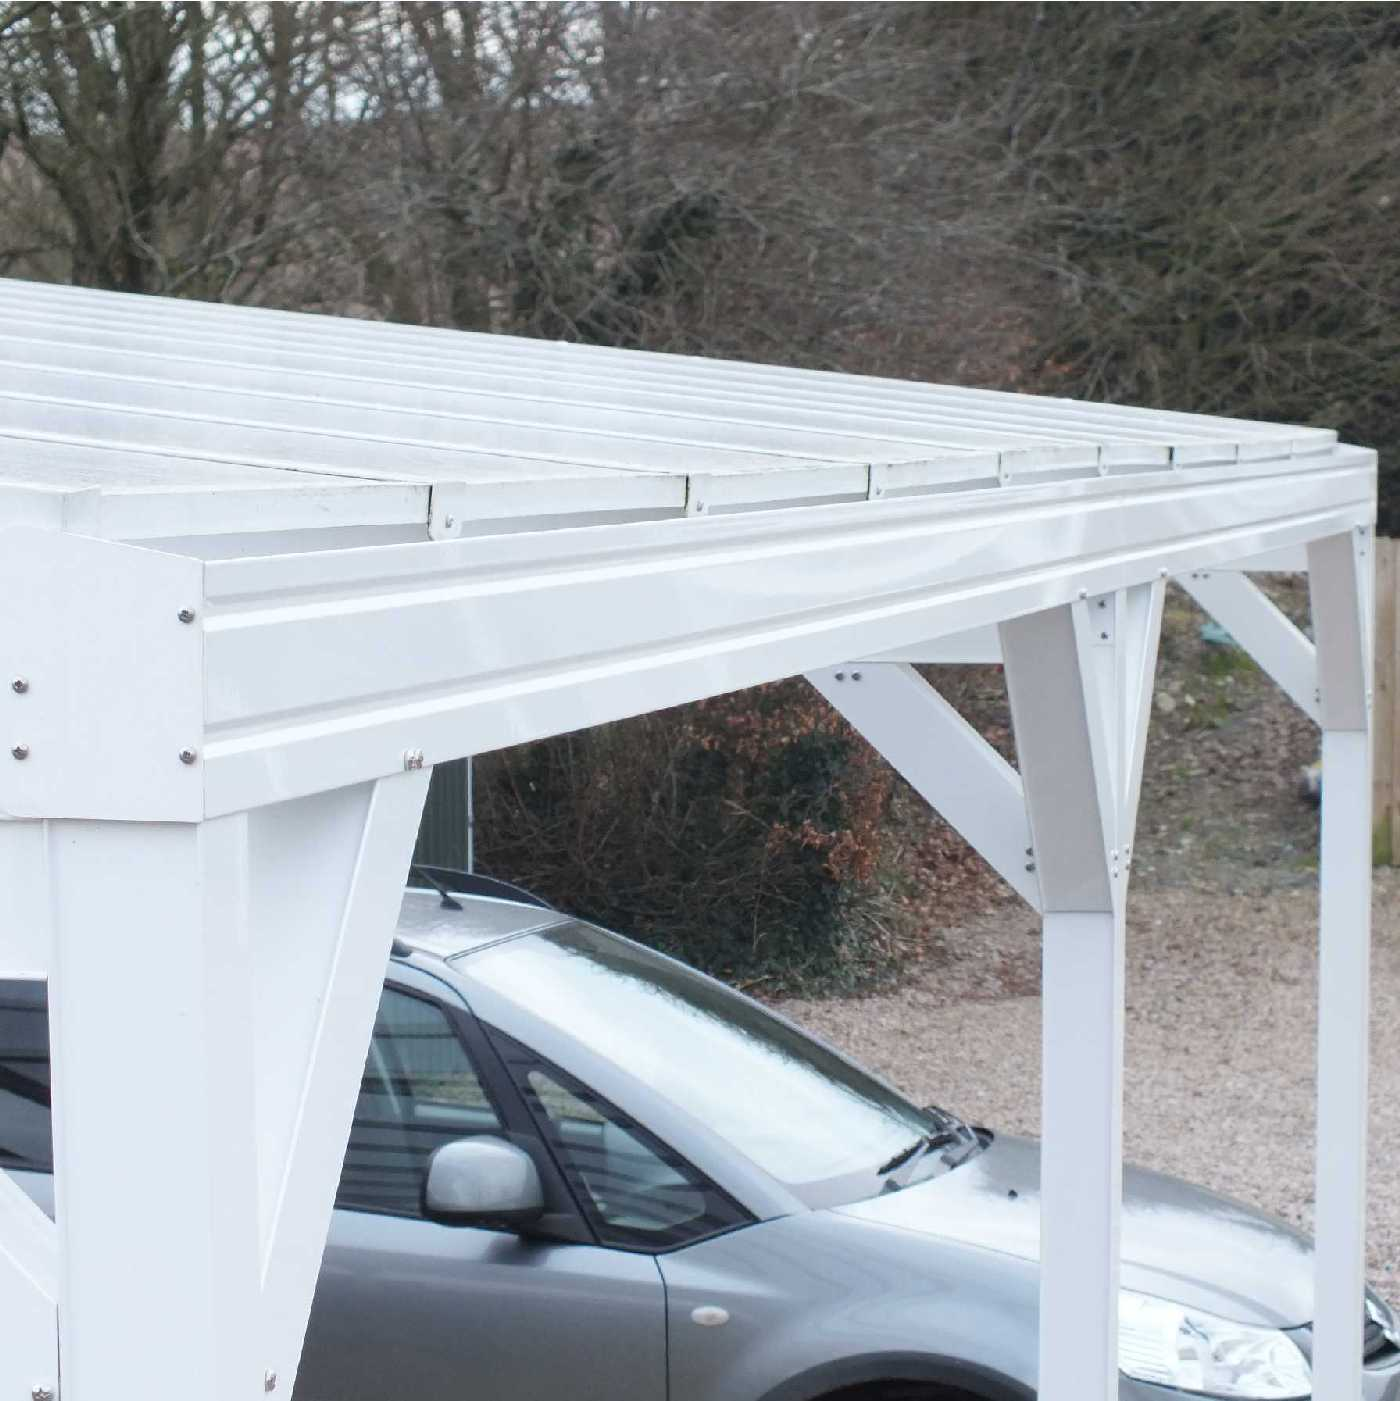 Omega Smart Free-Standing, MonoPitch Roof Canopy with 16mm Polycarbonate Glazing - 6.3m (W) x 4.0m (P), (8) Supporting Posts from Omega Build